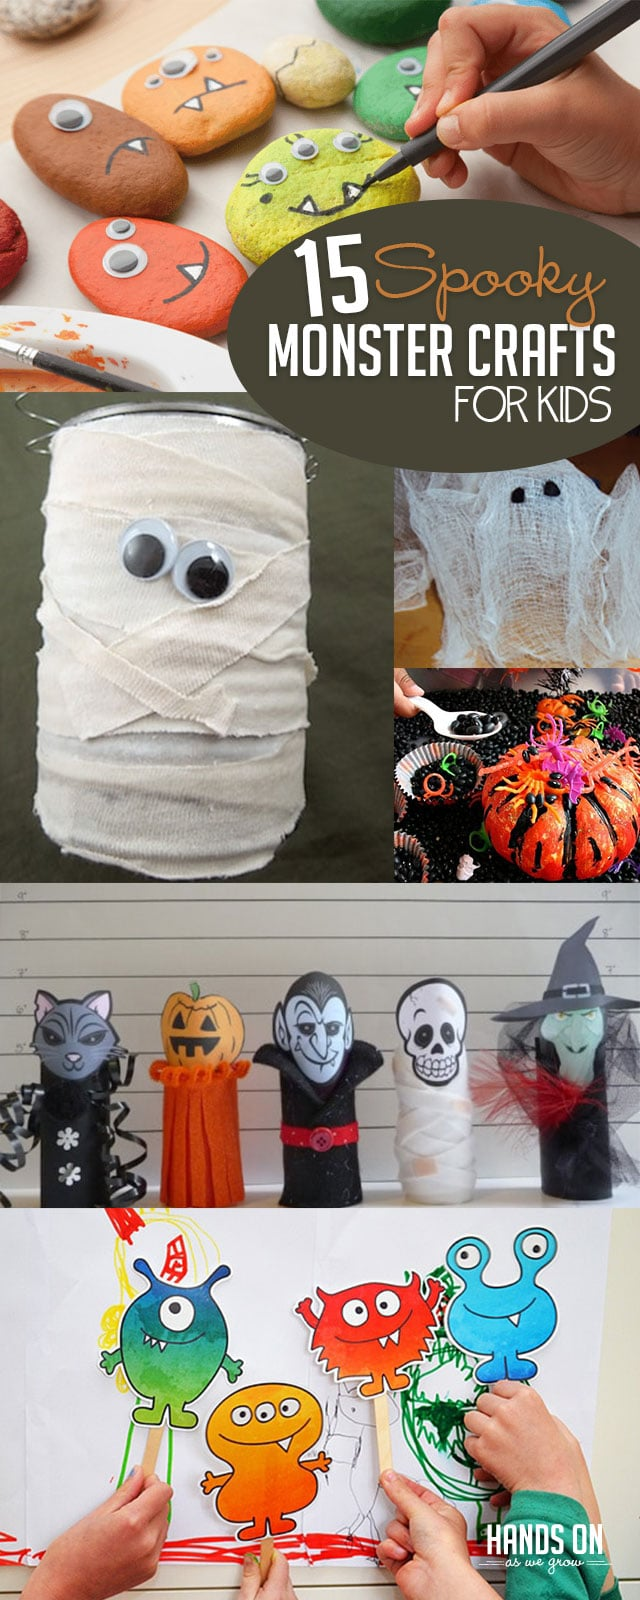 15 spooky halloween monster crafts for kids | hoawg